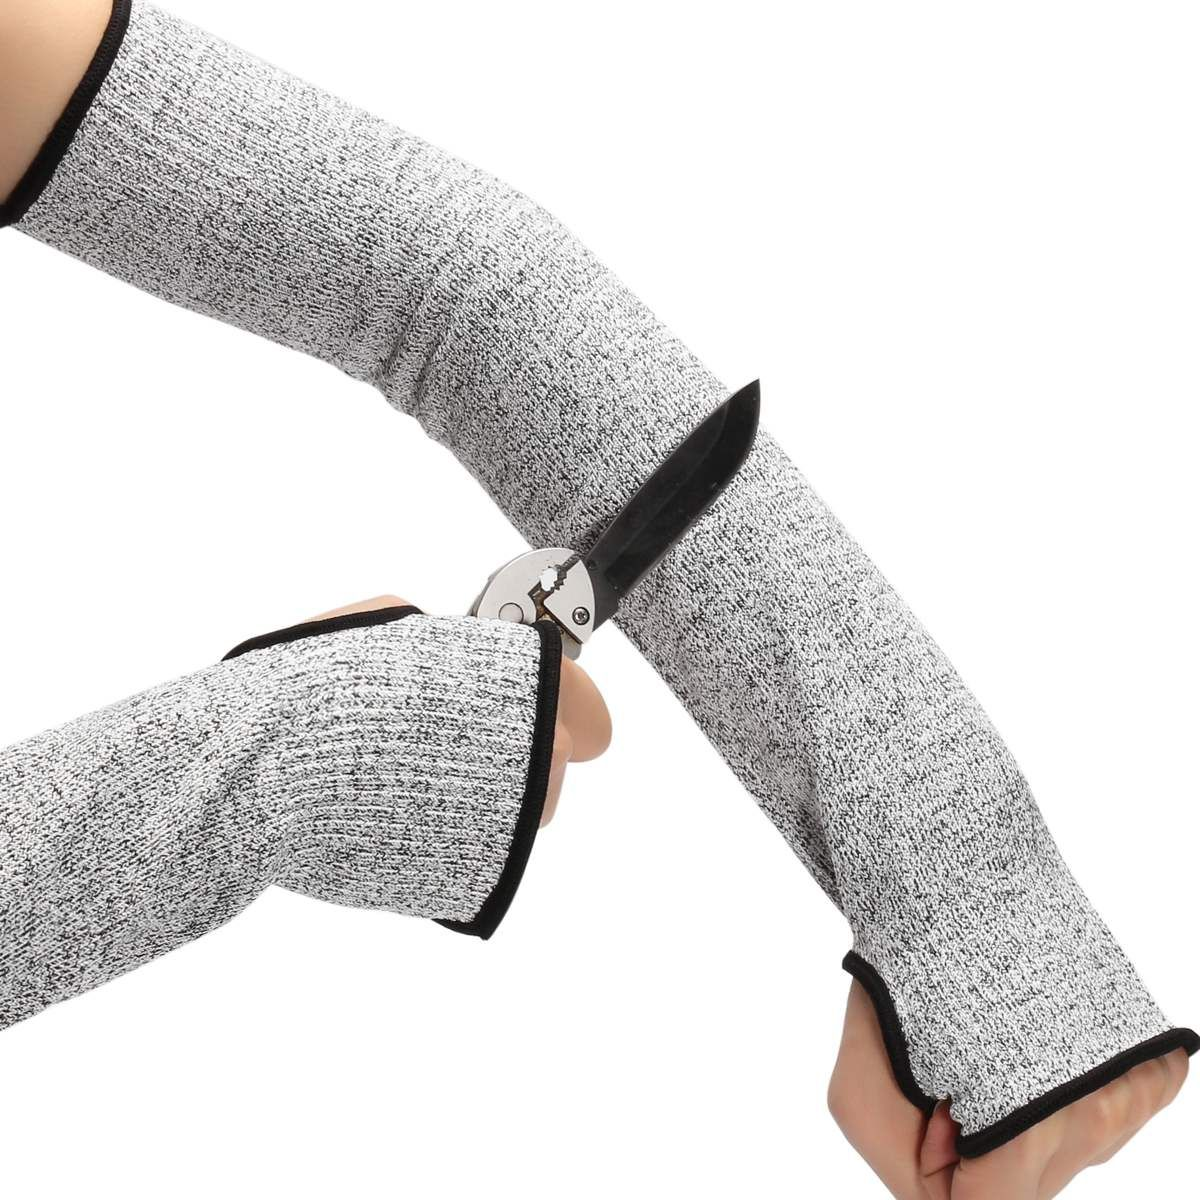 New Grey Safety Cut Heat-Resistant Sleeves Arm Guard Protection Armband Gloves